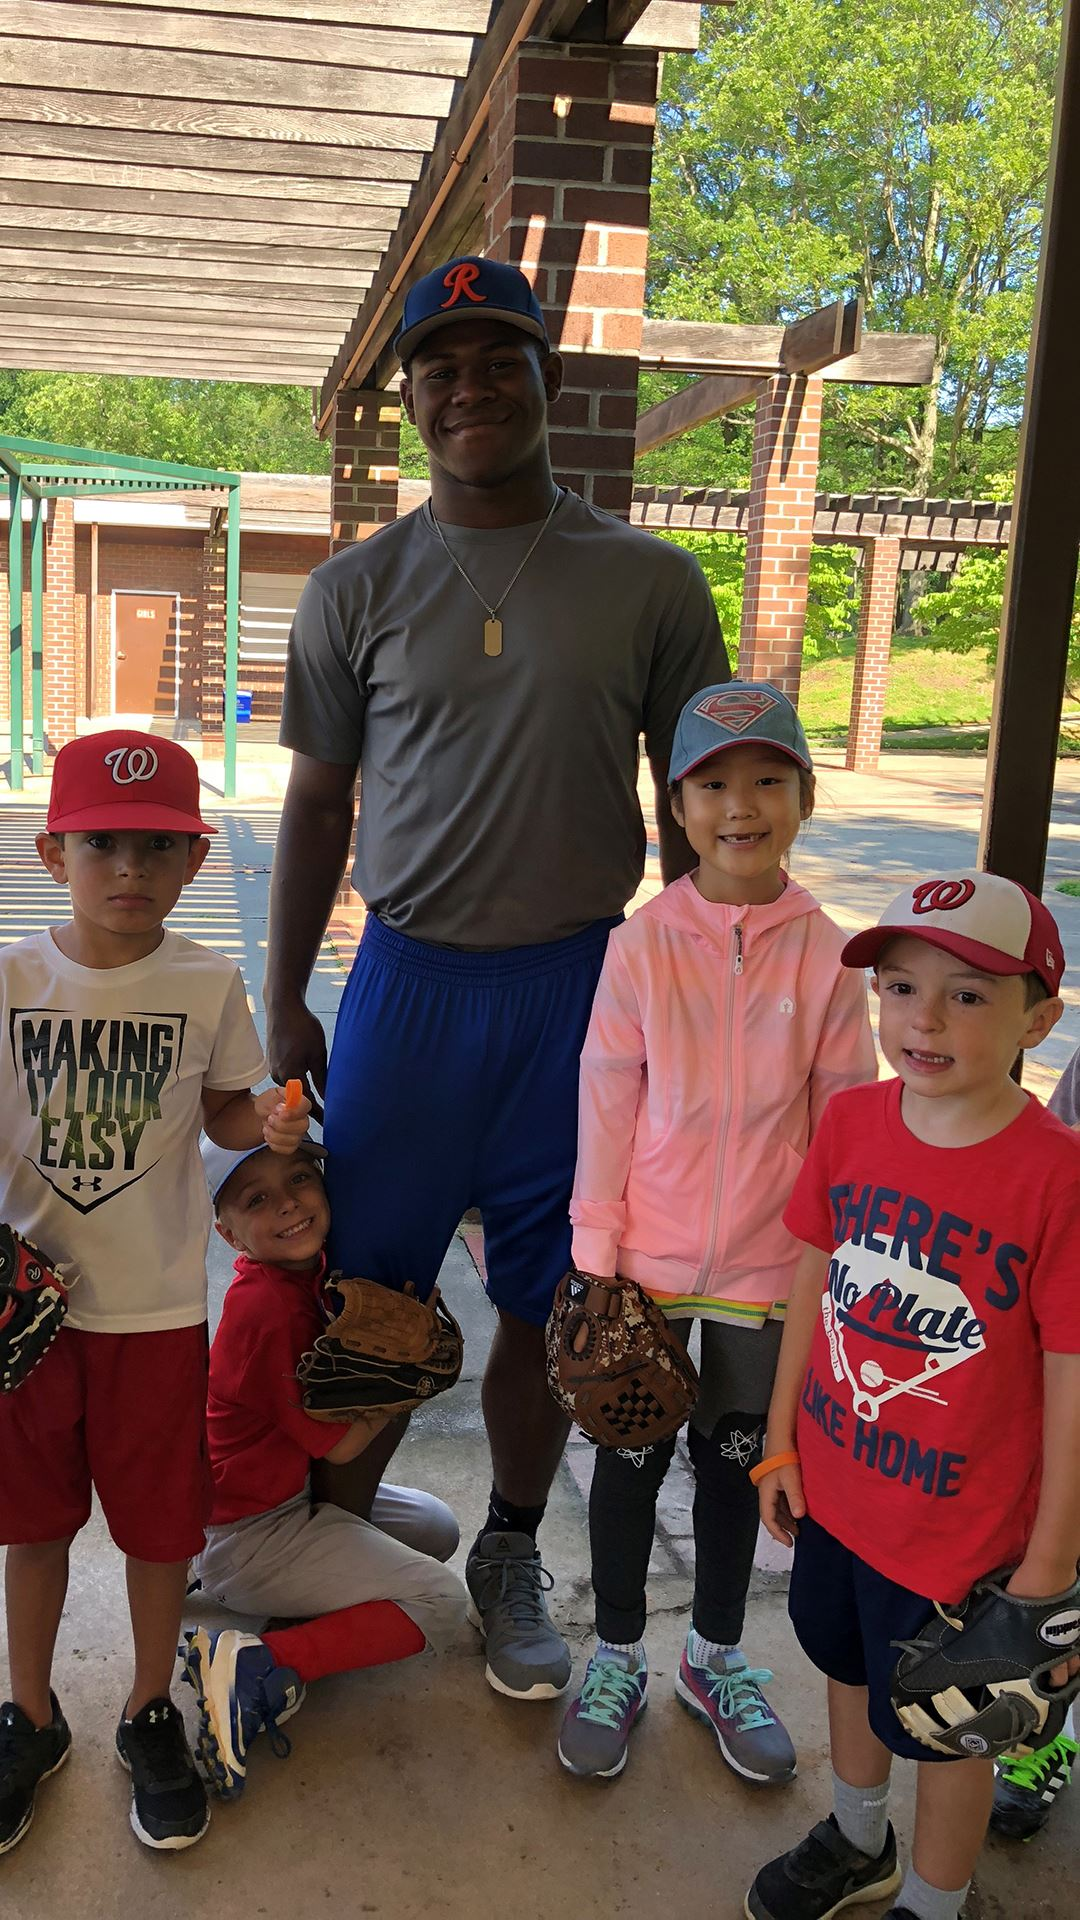 Camp kids with baseball